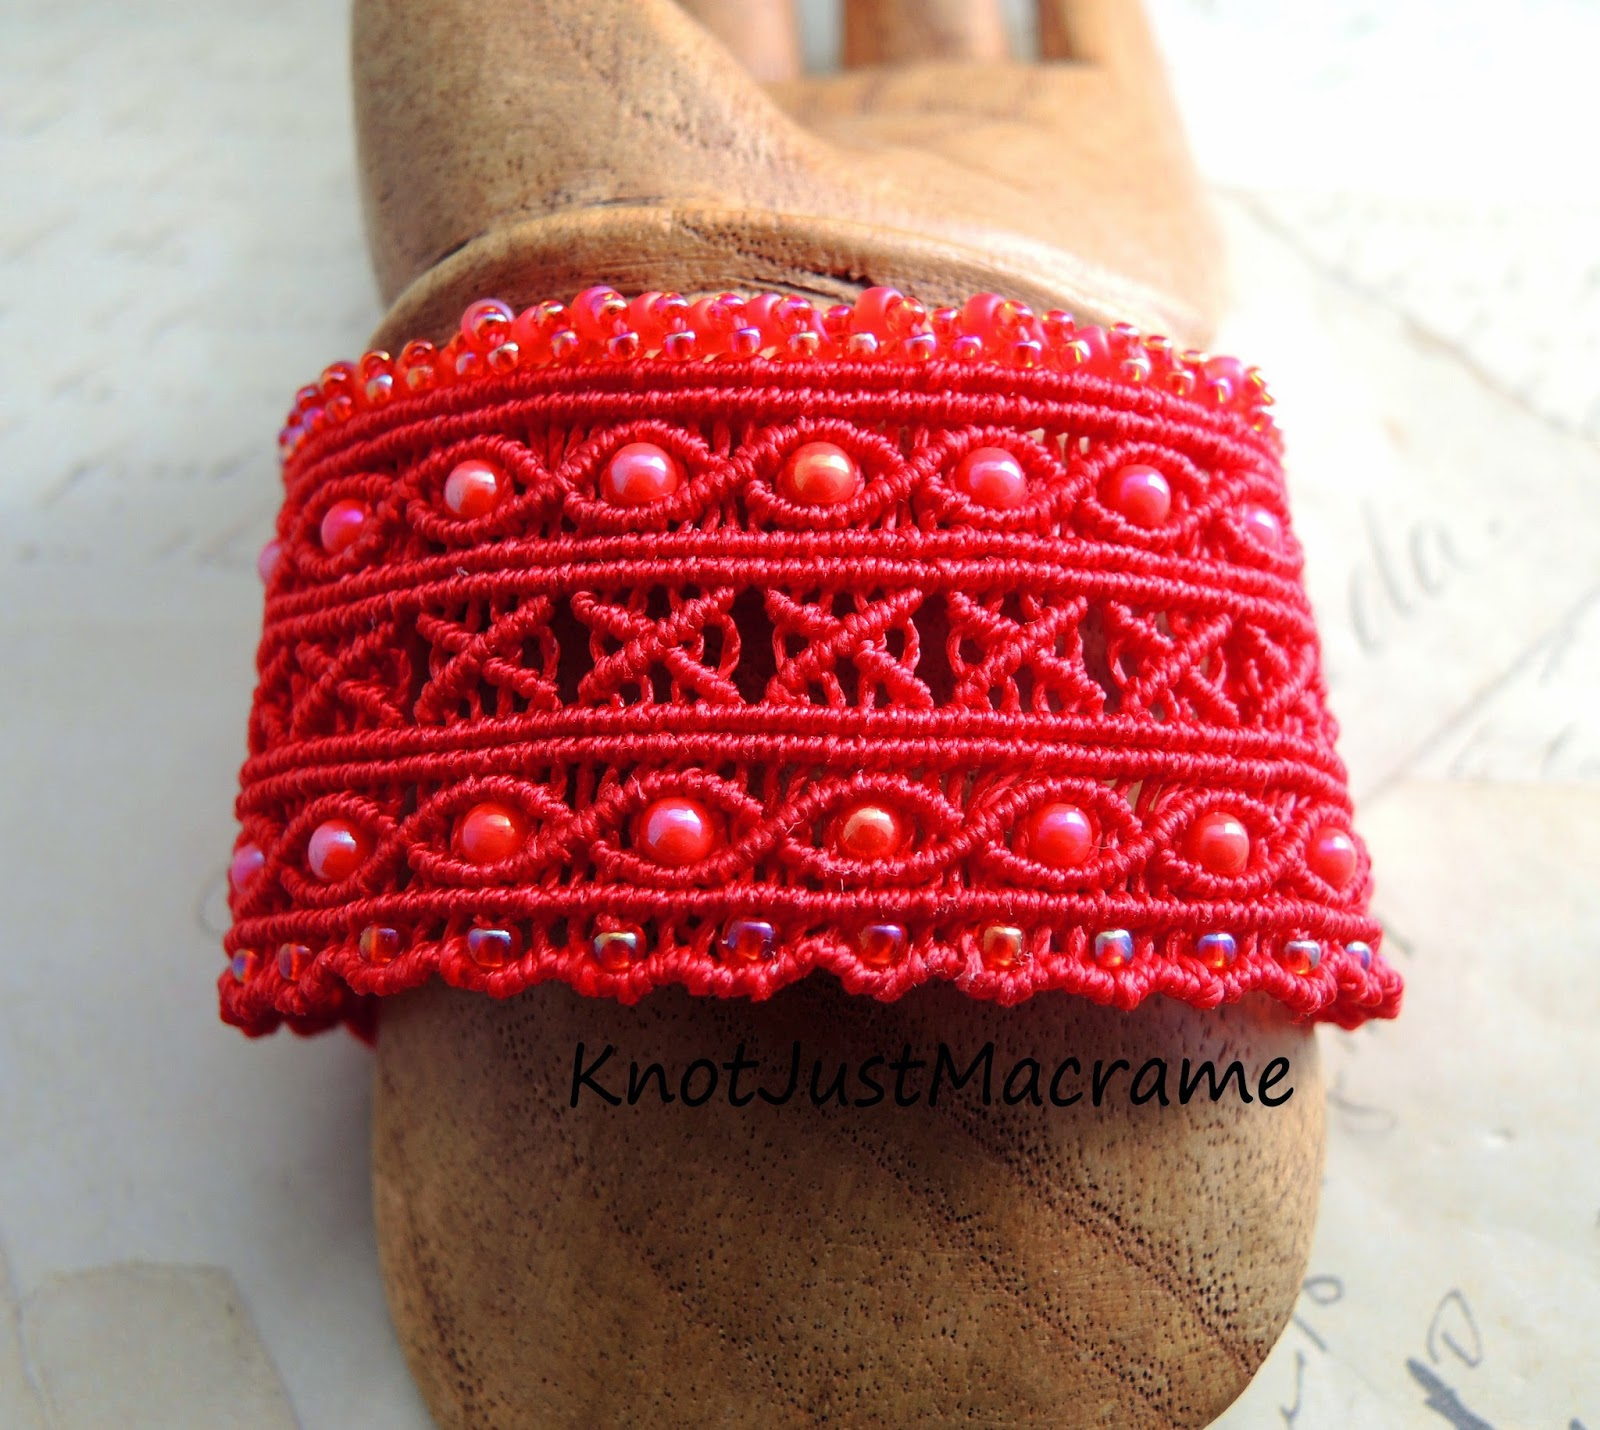 Wide macrame cuff design class by Sherri Stokey